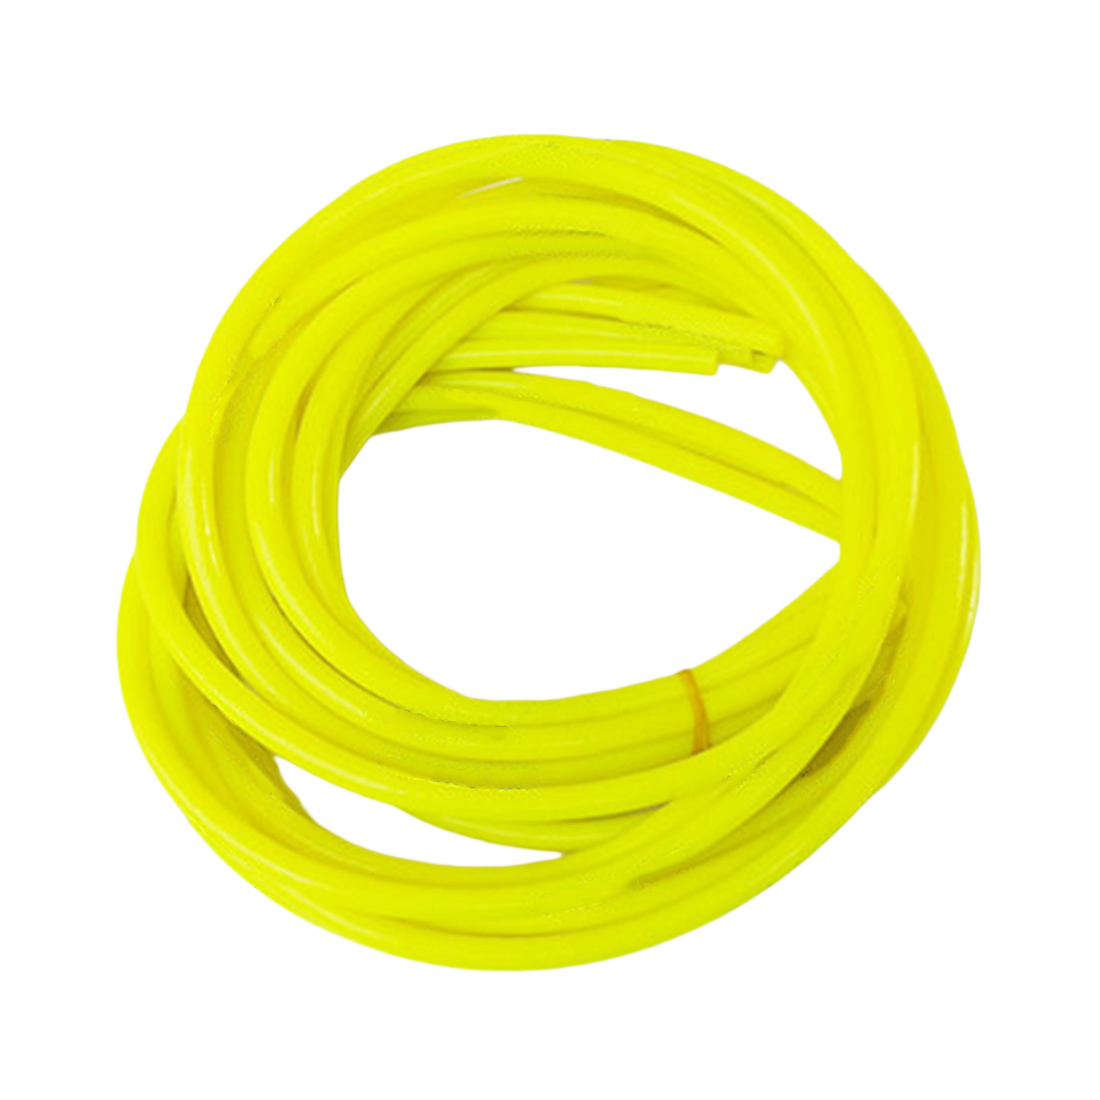 Image 5 - New Arrival 1m Motorcycle Bike Fuel Gas Oil Delivery Tube Hose Petrol Pipe 5mm I/D 8mm O/D Motorcycle Accessories Parts-in Oil Filters from Automobiles & Motorcycles